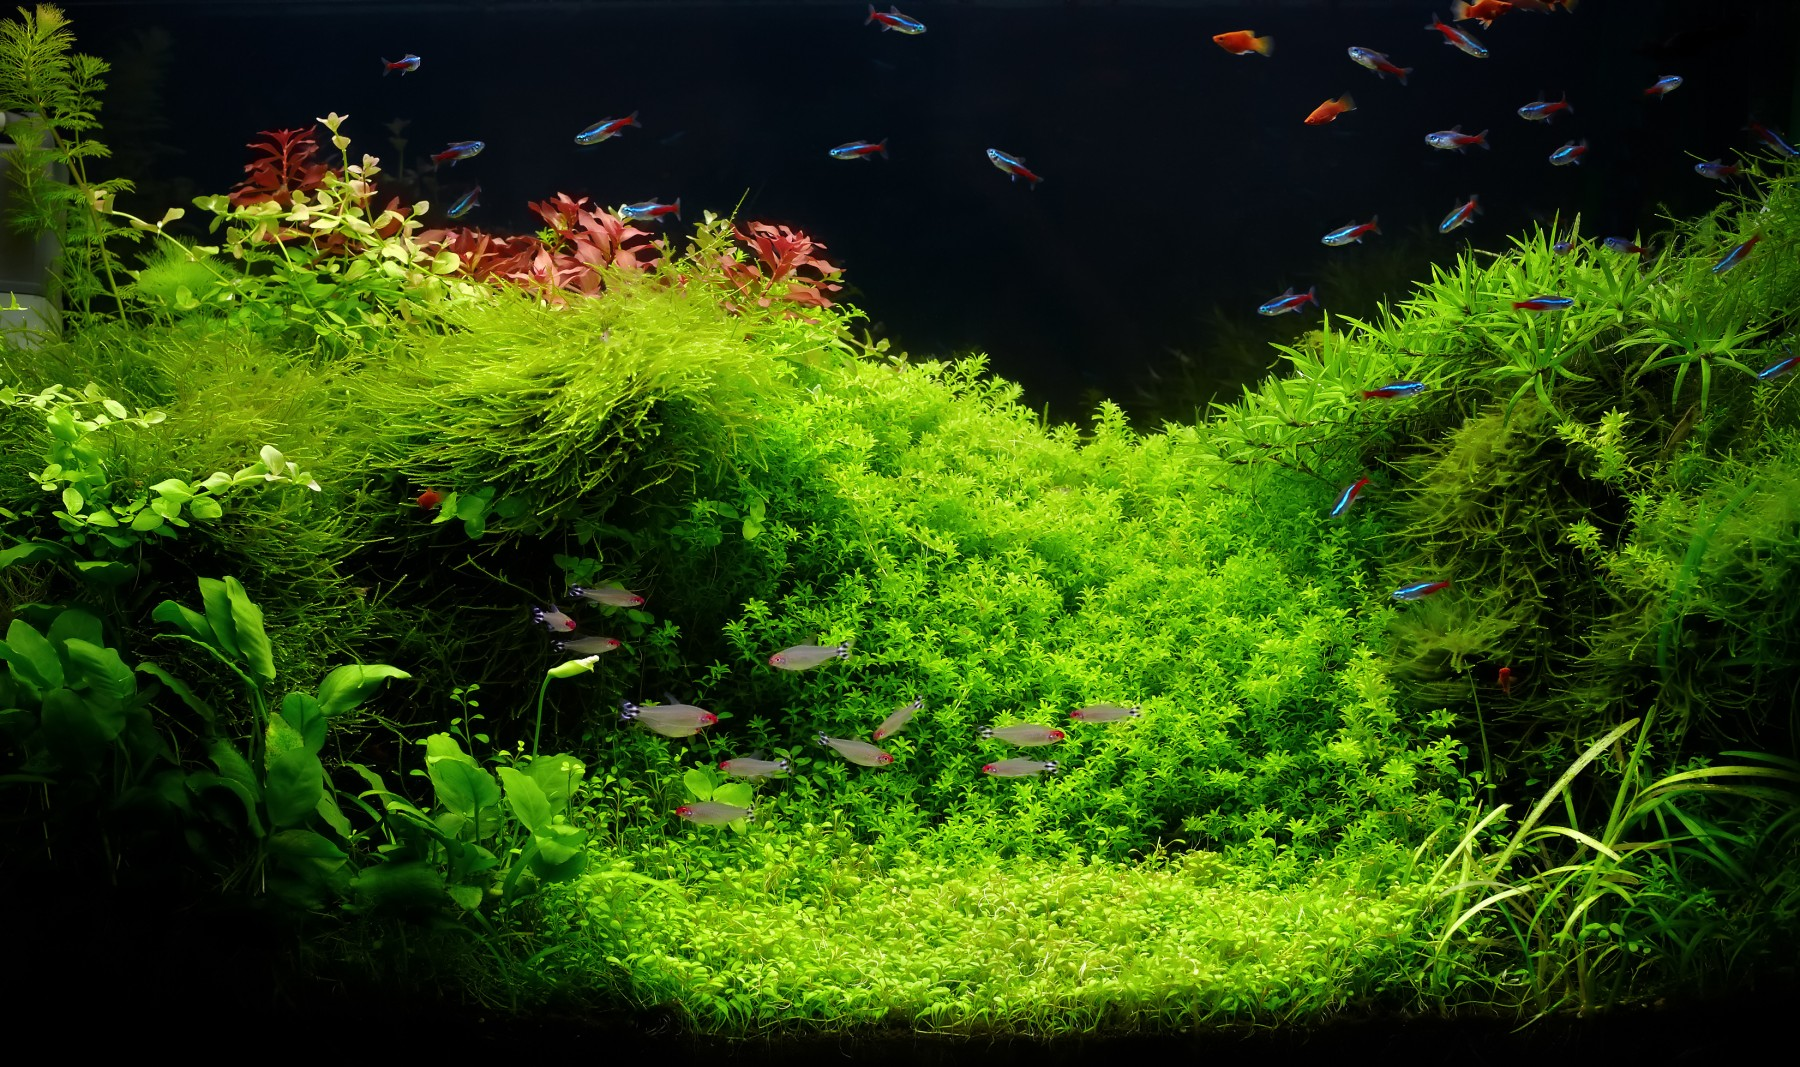 Freshwater custom aquarium in Amano style with little characins